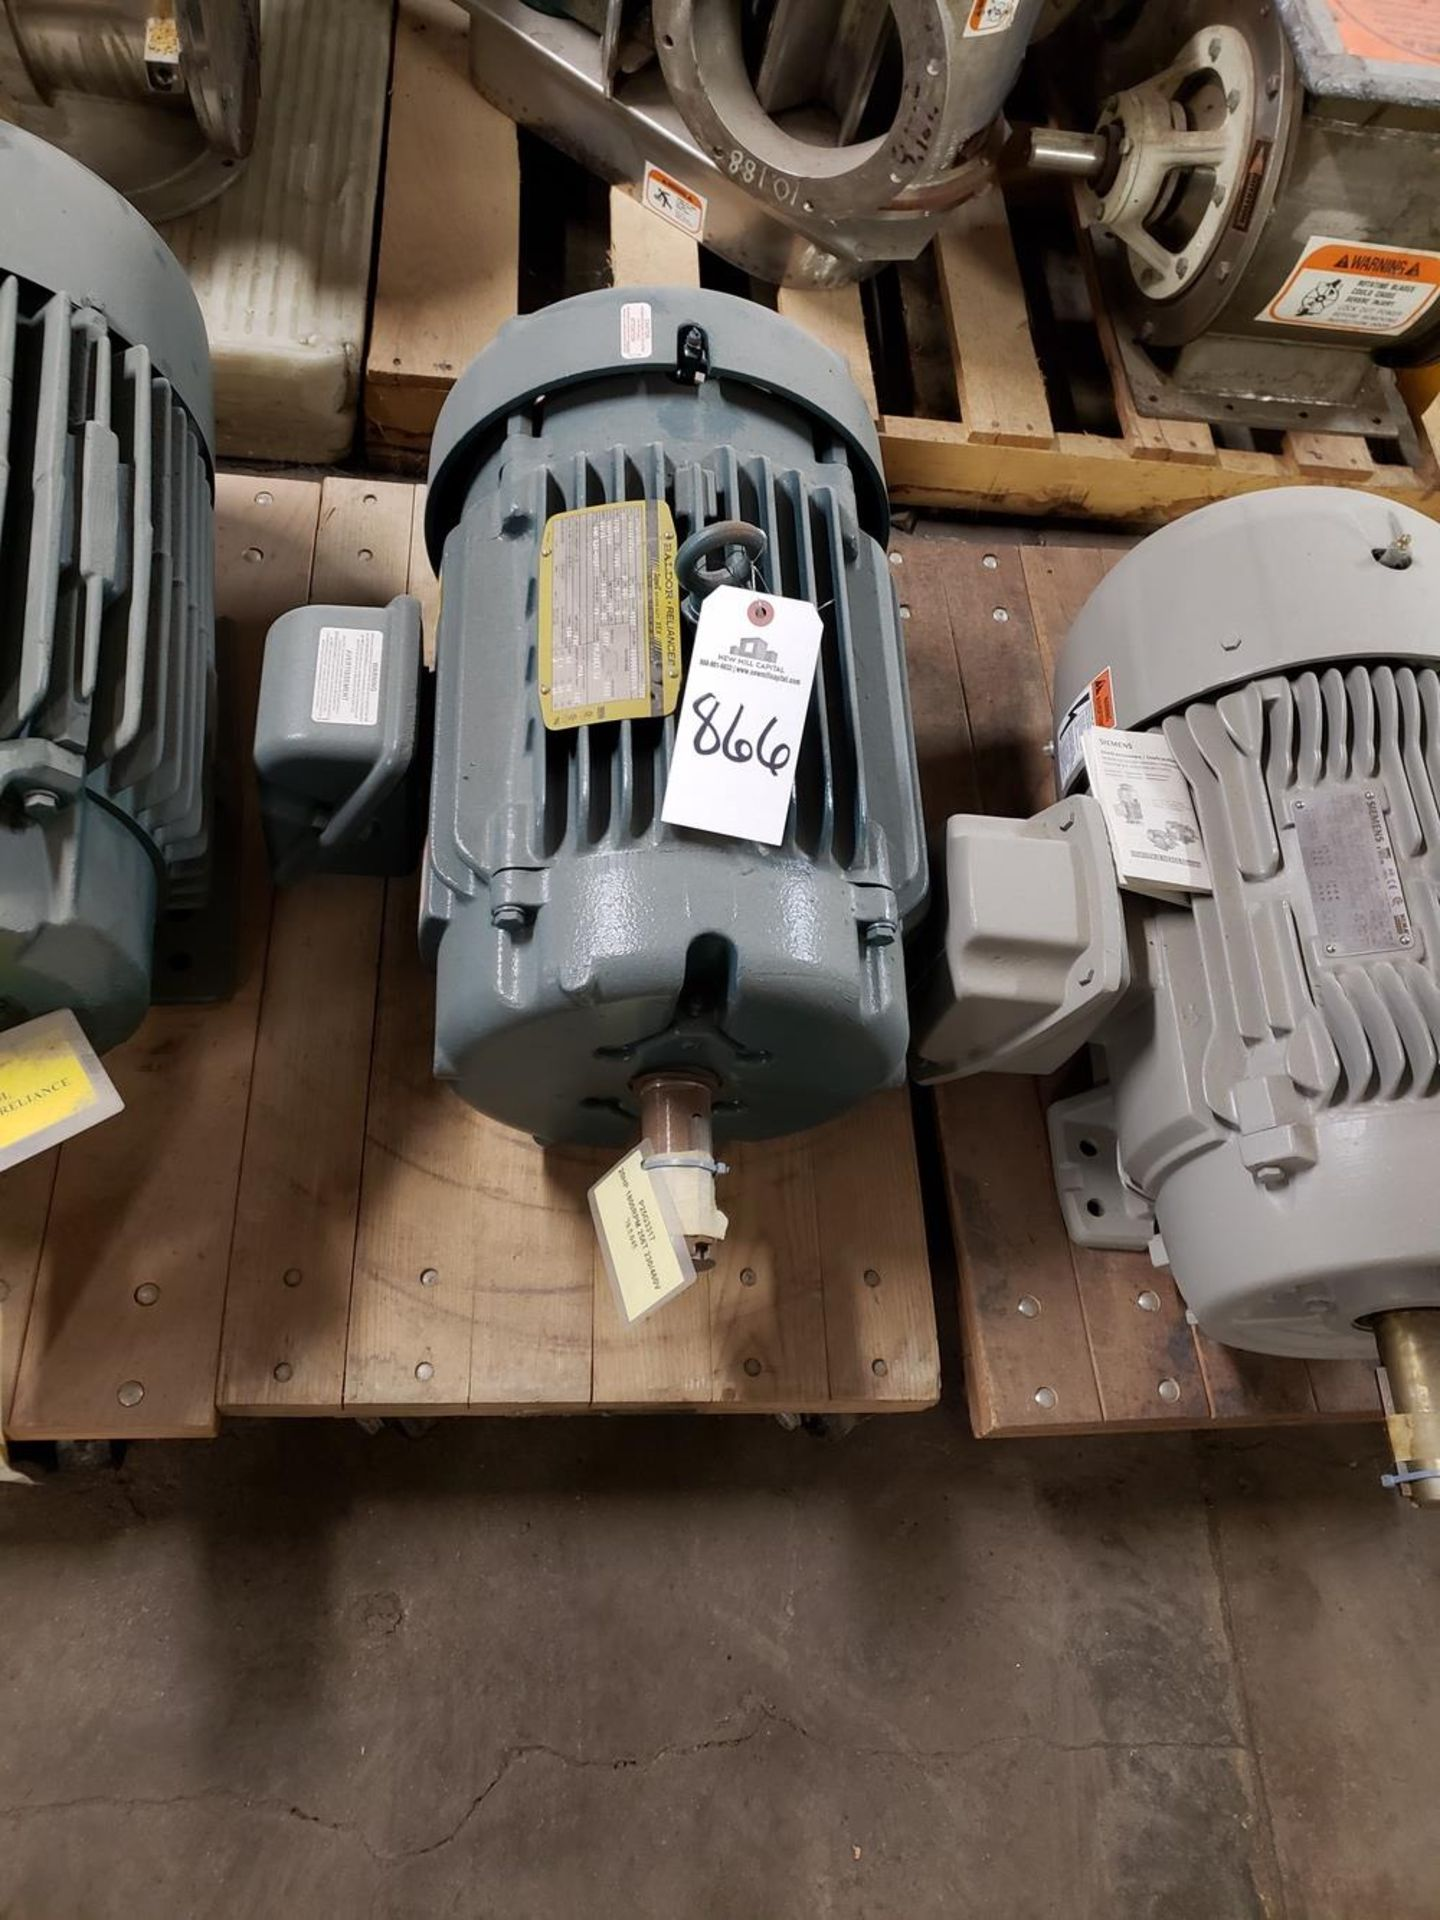 Lot 866 - Baldor Electric Motor, 10 HP - Subject to Bulk Bid Lot 845B -The Greater of th | Rig Fee: No Charge